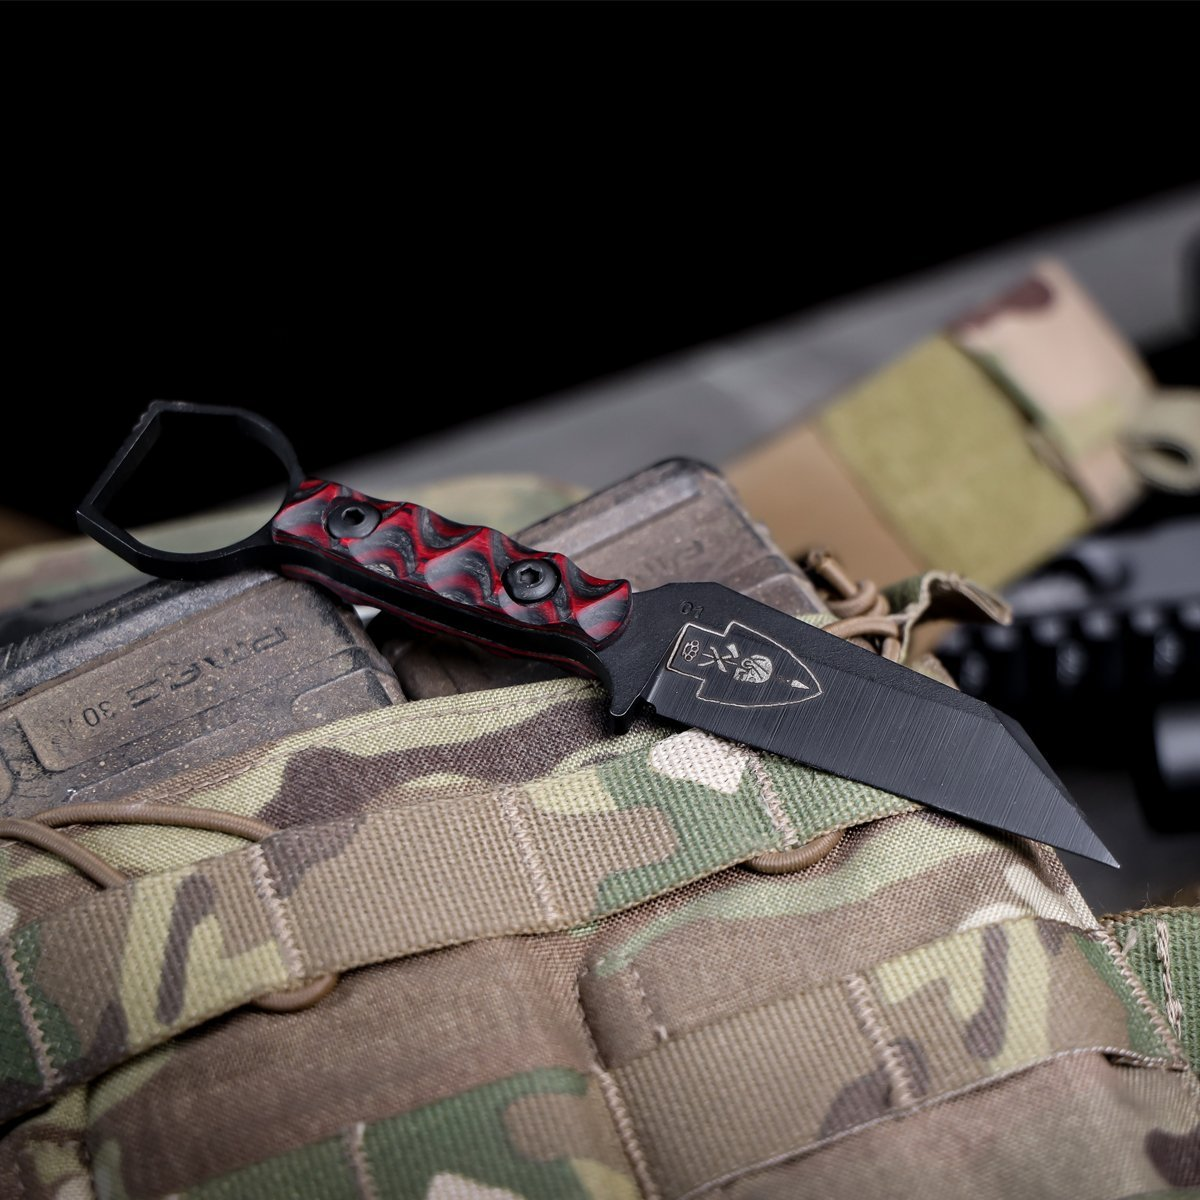 OAF NATION AND TOOR KNIVES ANNOUNCES NEW KODI GEN I FIXED BLADE KNIFE COLLABORATION